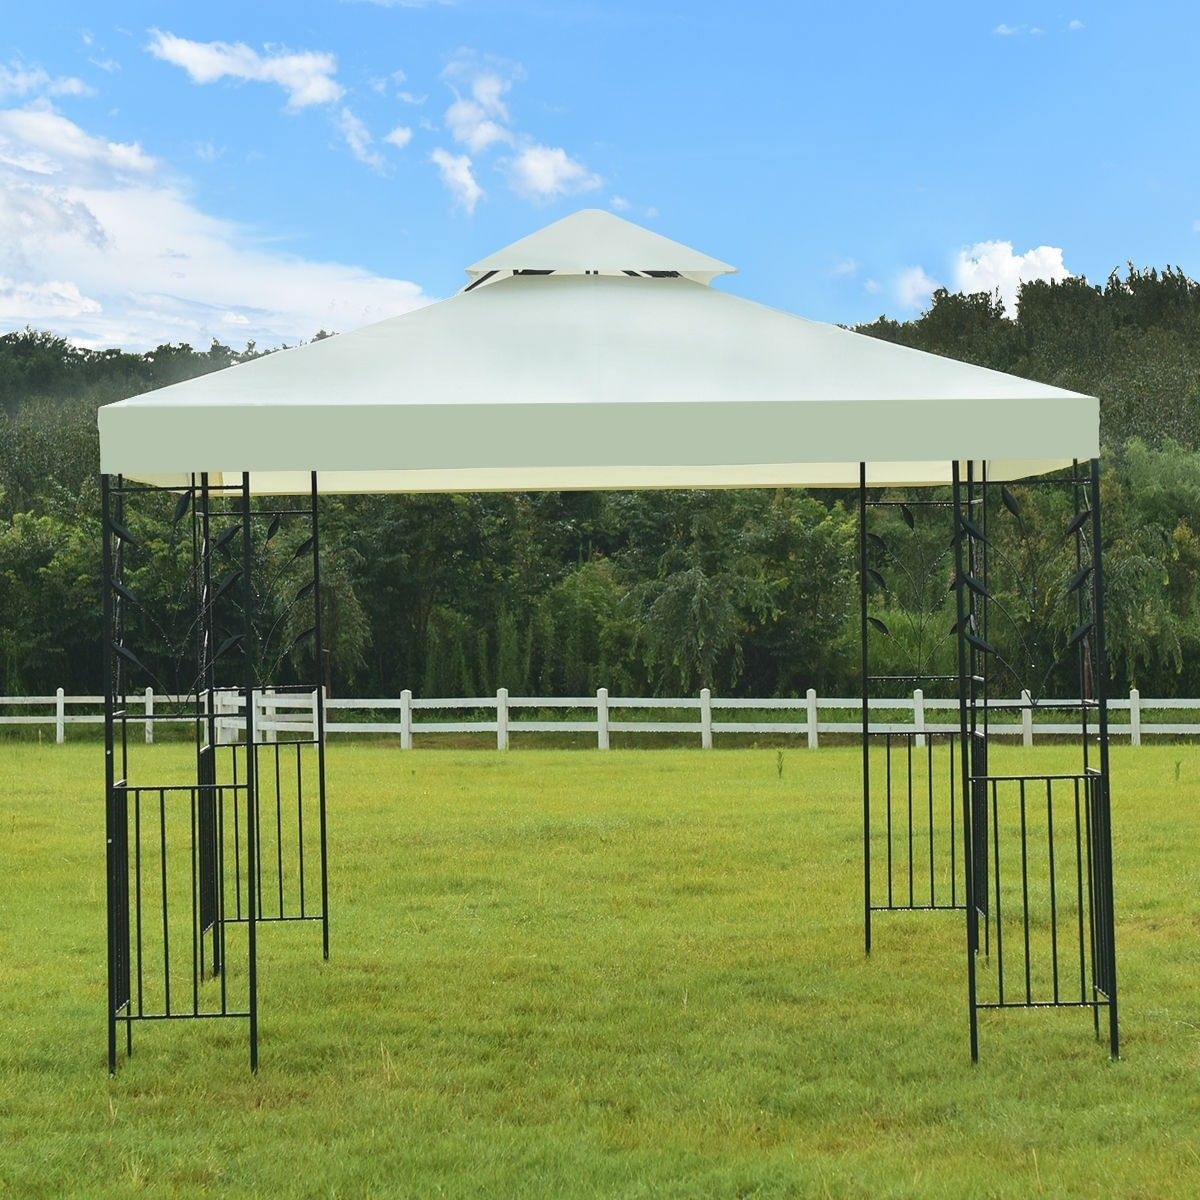 10 X 10 Wedding Party Canopy Tent 138 95 Free Shipping Material Steel Fabric Plastic Net Weight 60 Lbs Overall Dimen Gazebo Party Canopy Canopy Tent